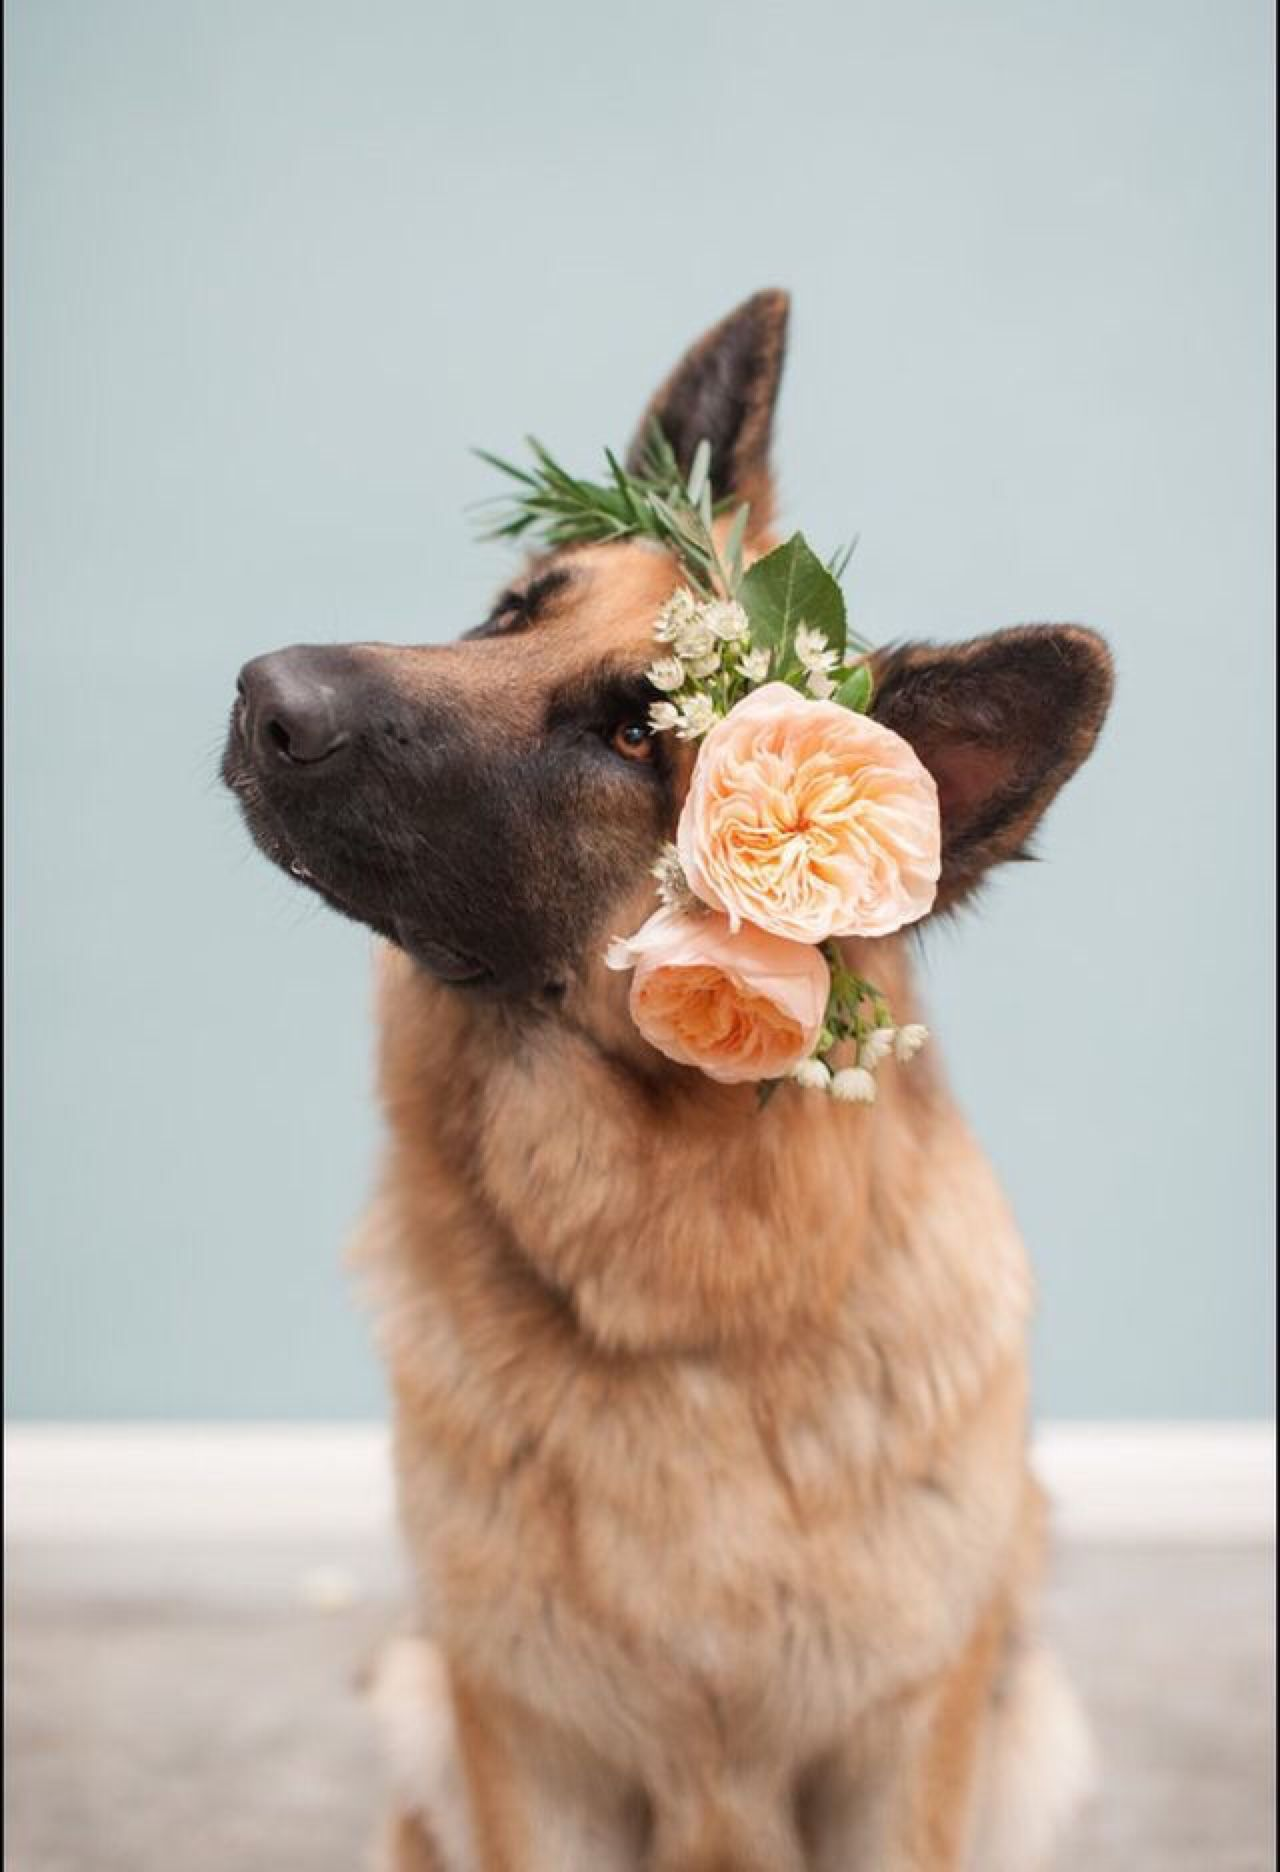 Dog Wearing A Flower Crown Part Of My Dream Pinterest Dogs